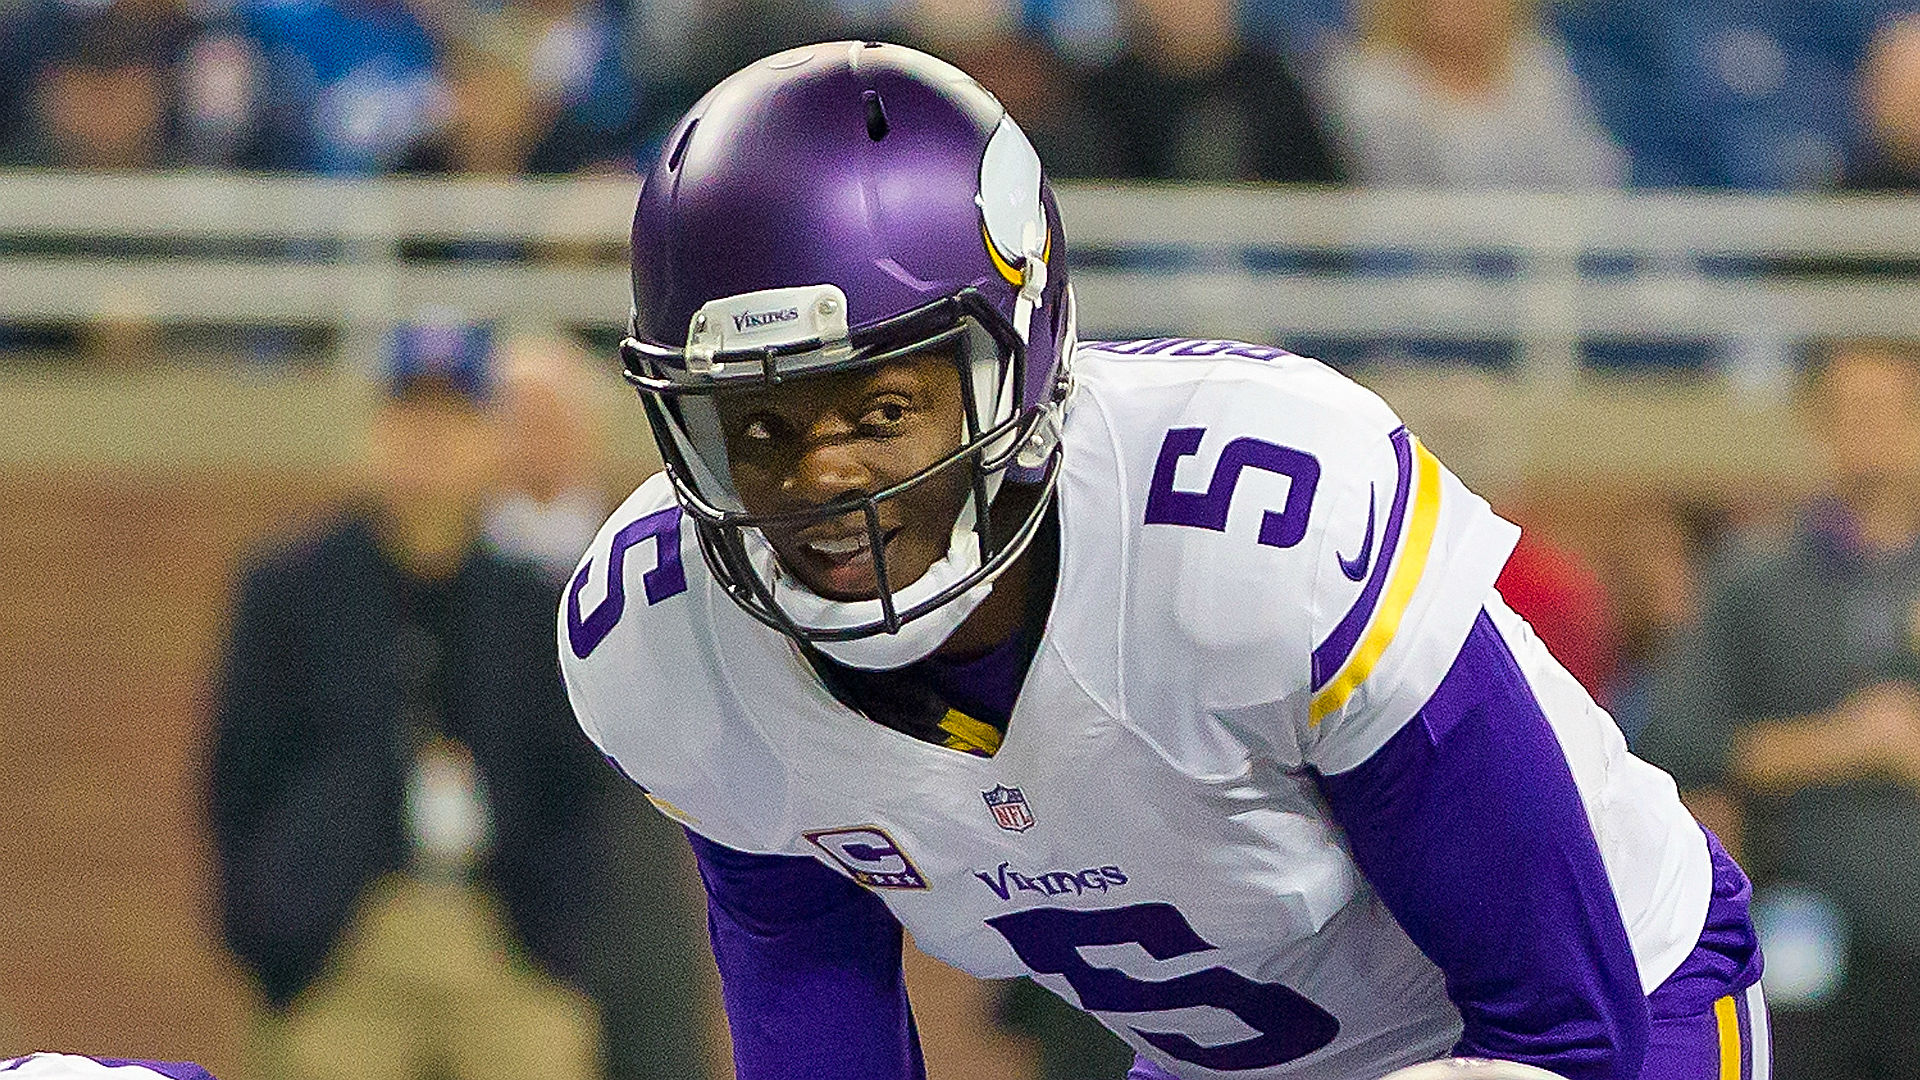 Teddy bridgewater injury update vikings expect qb to miss 2017 too report says sporting news - Teddy bridgewater injury update vikings expect qb to miss 2017 too report says nfl sporting news